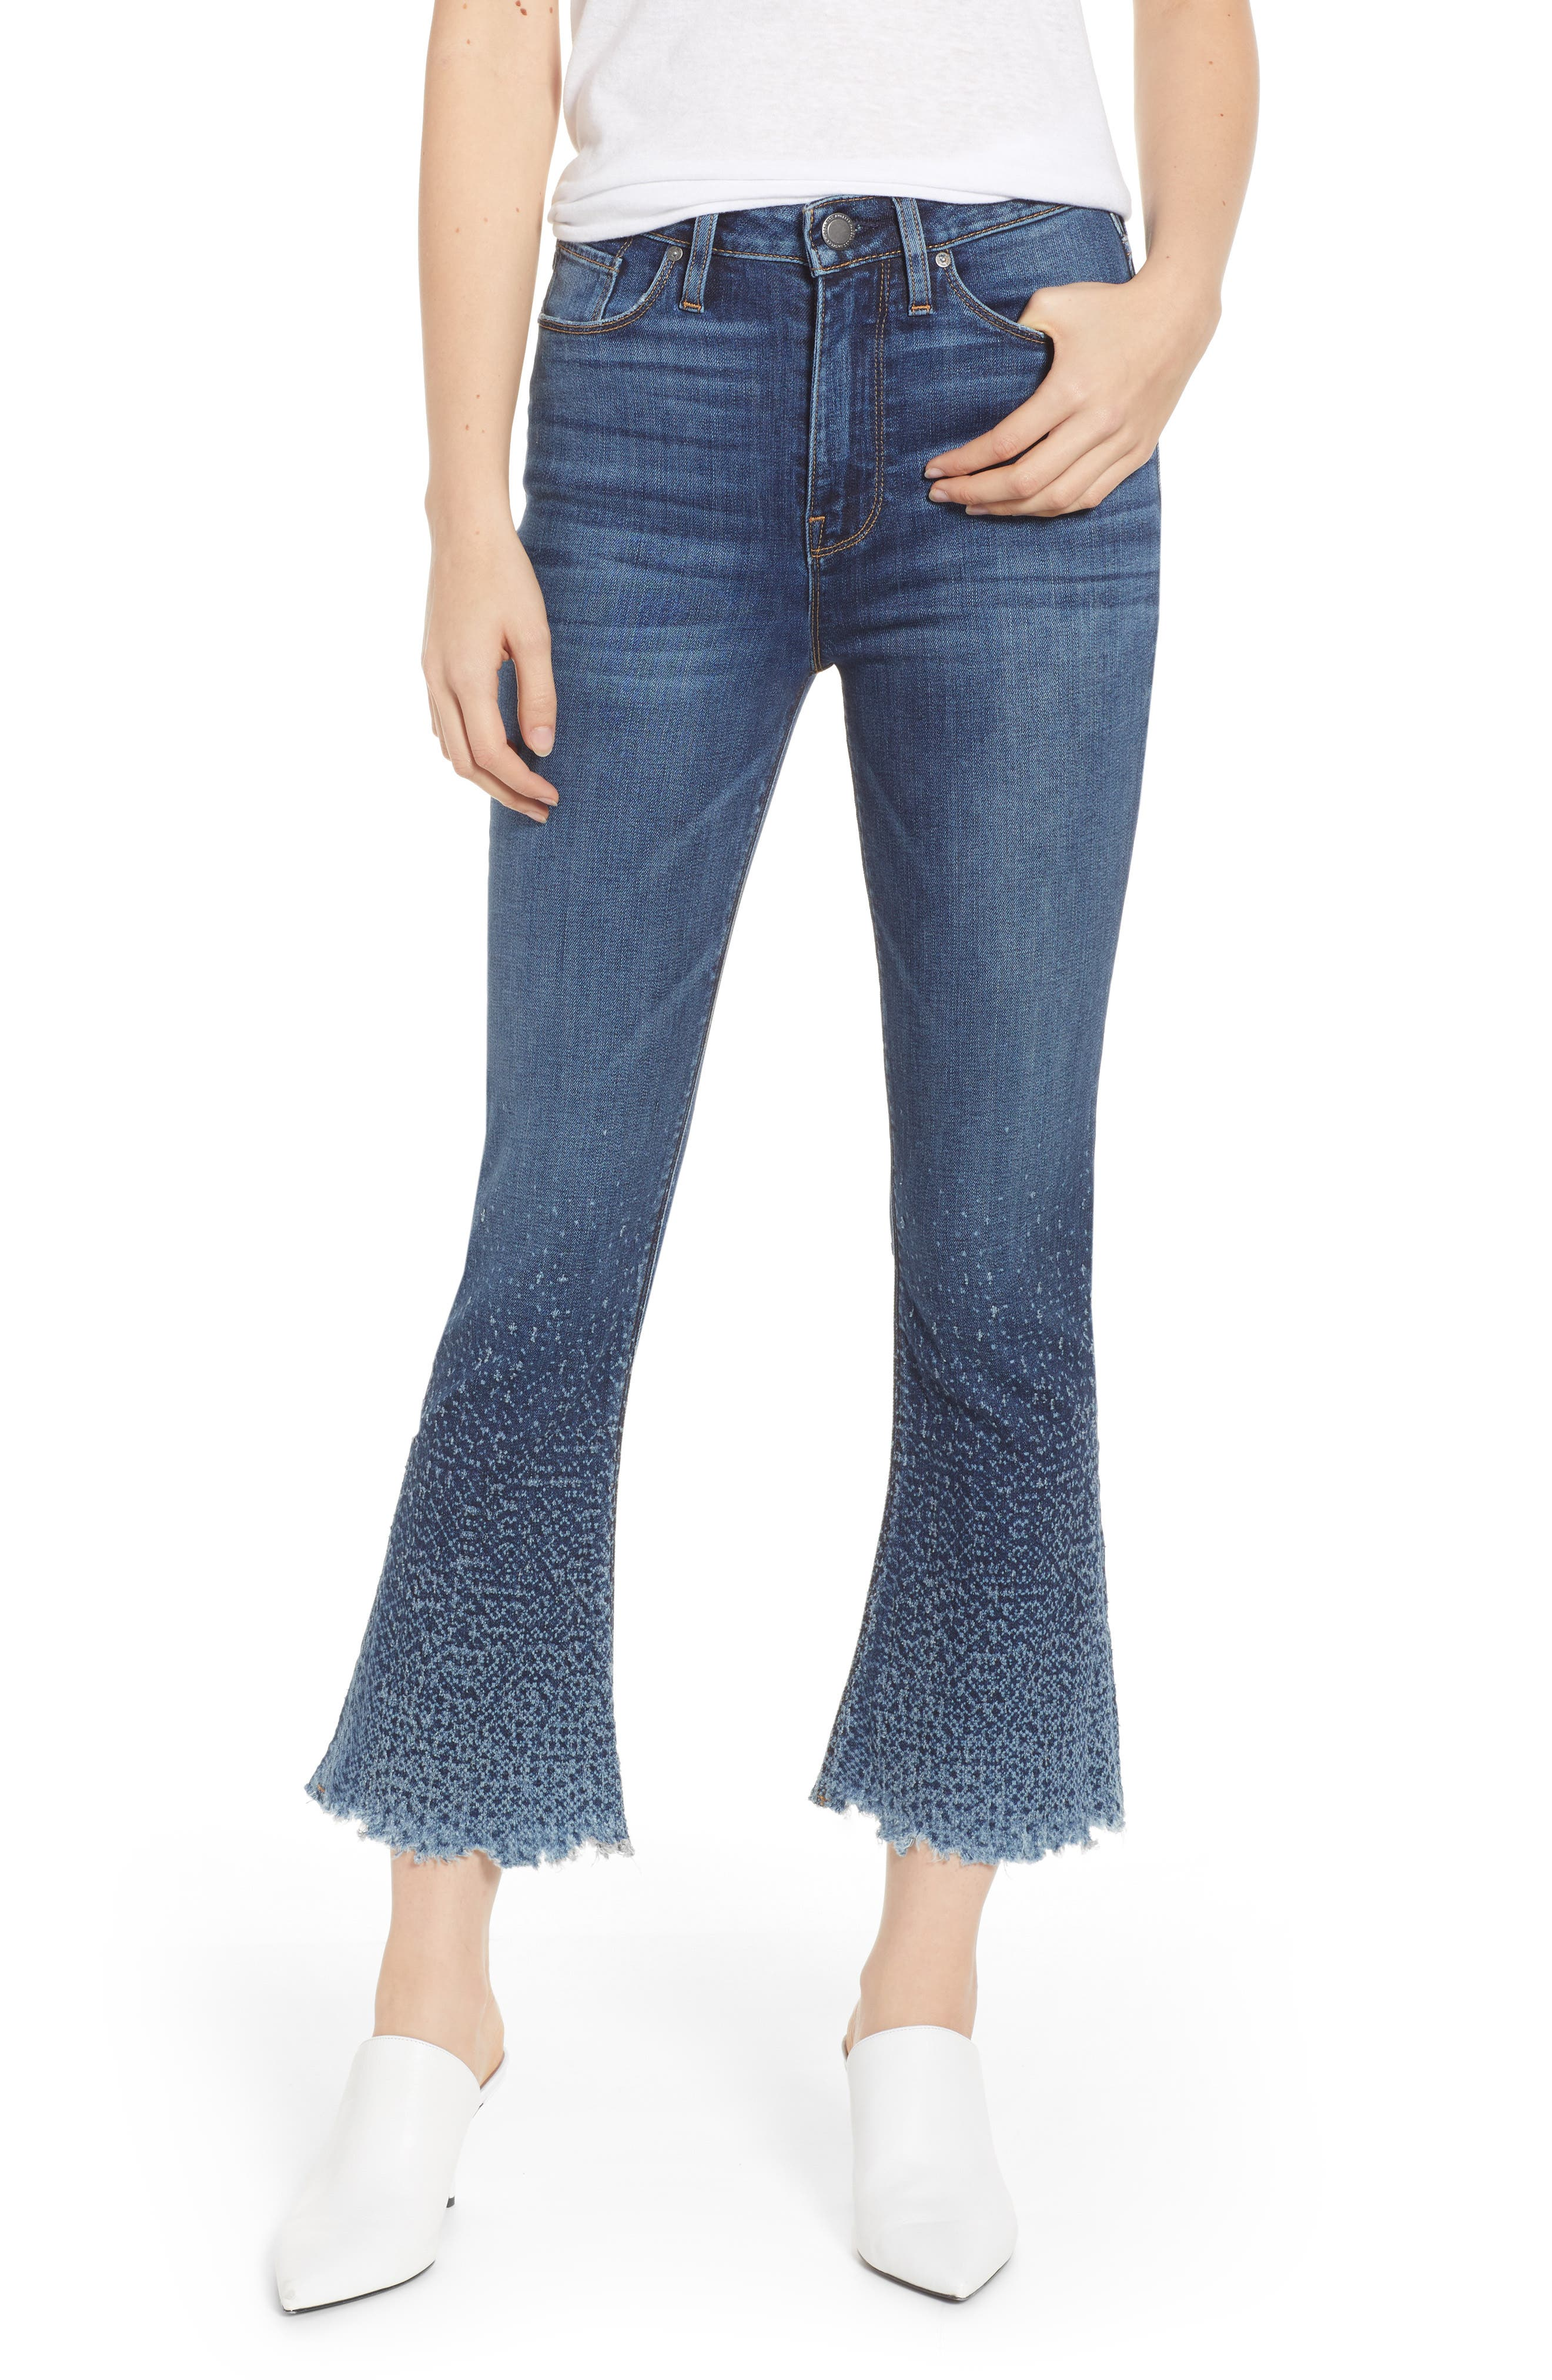 HUDSON JEANS Holly High Waist Crop Flare Jeans, Main, color, 420